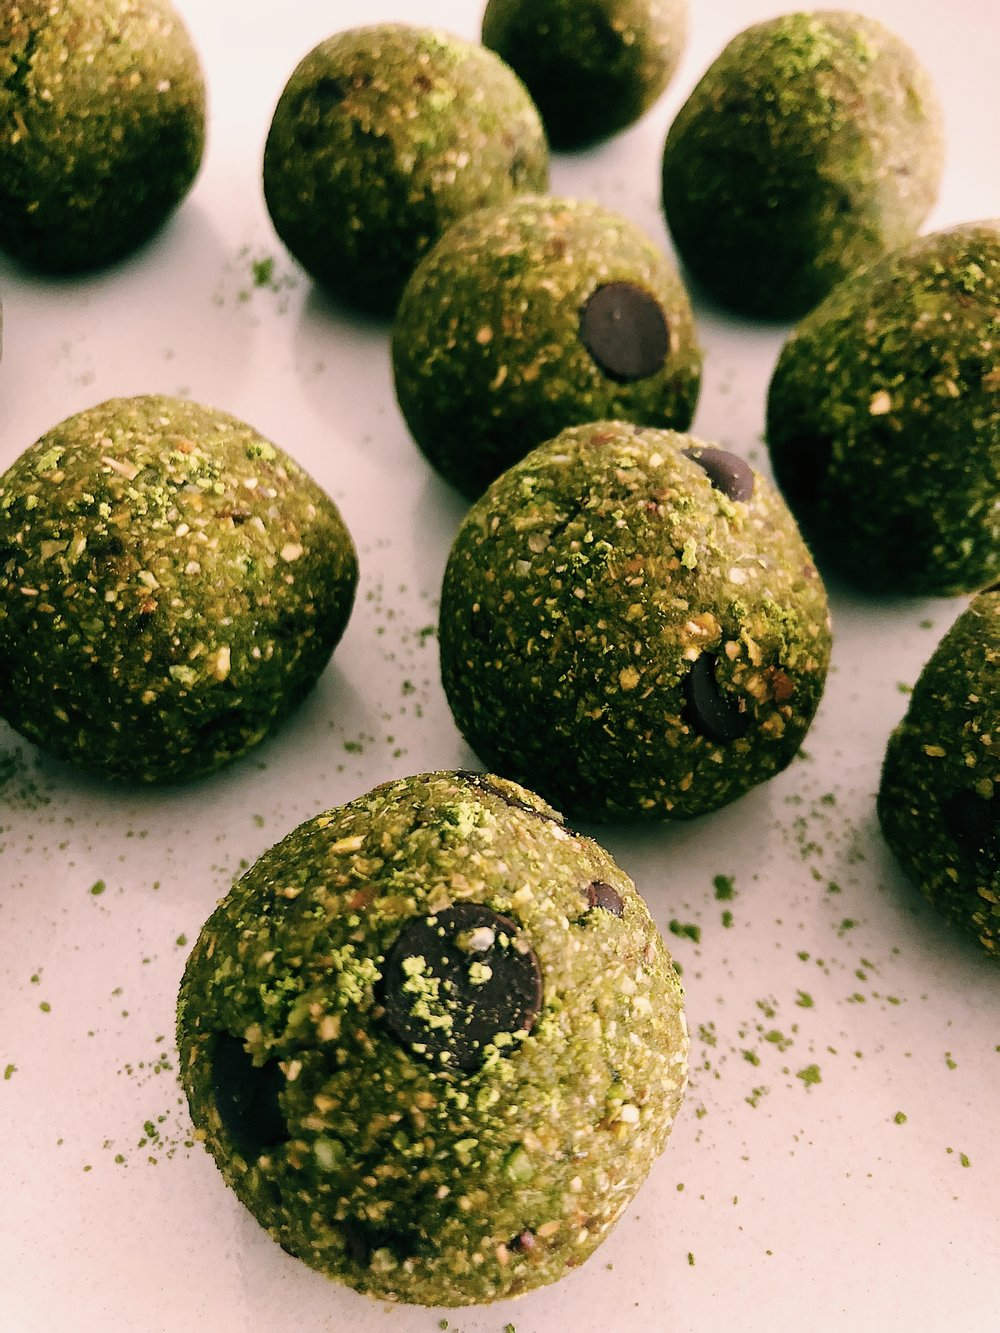 MATCHA CHOCOLATE CHIP BALLS - INGREDIENTS1 1/2 tb matcha, plus extra for sprinkling on top2/3 cup fine almond meal (I used Bob's Red Mill because it's nice and fine)1 cup gluten free rolled oats1/2 tsp vanilla extract1/2 cup unsweetened shredded coconut1/2 cup dairy free chocolate chips (I used Enjoy Life Foods)10 medjool dates (or 1 cup), pitted, and soaked in hot water for 15 minutes until soft1 scoop collagen peptides (optional)